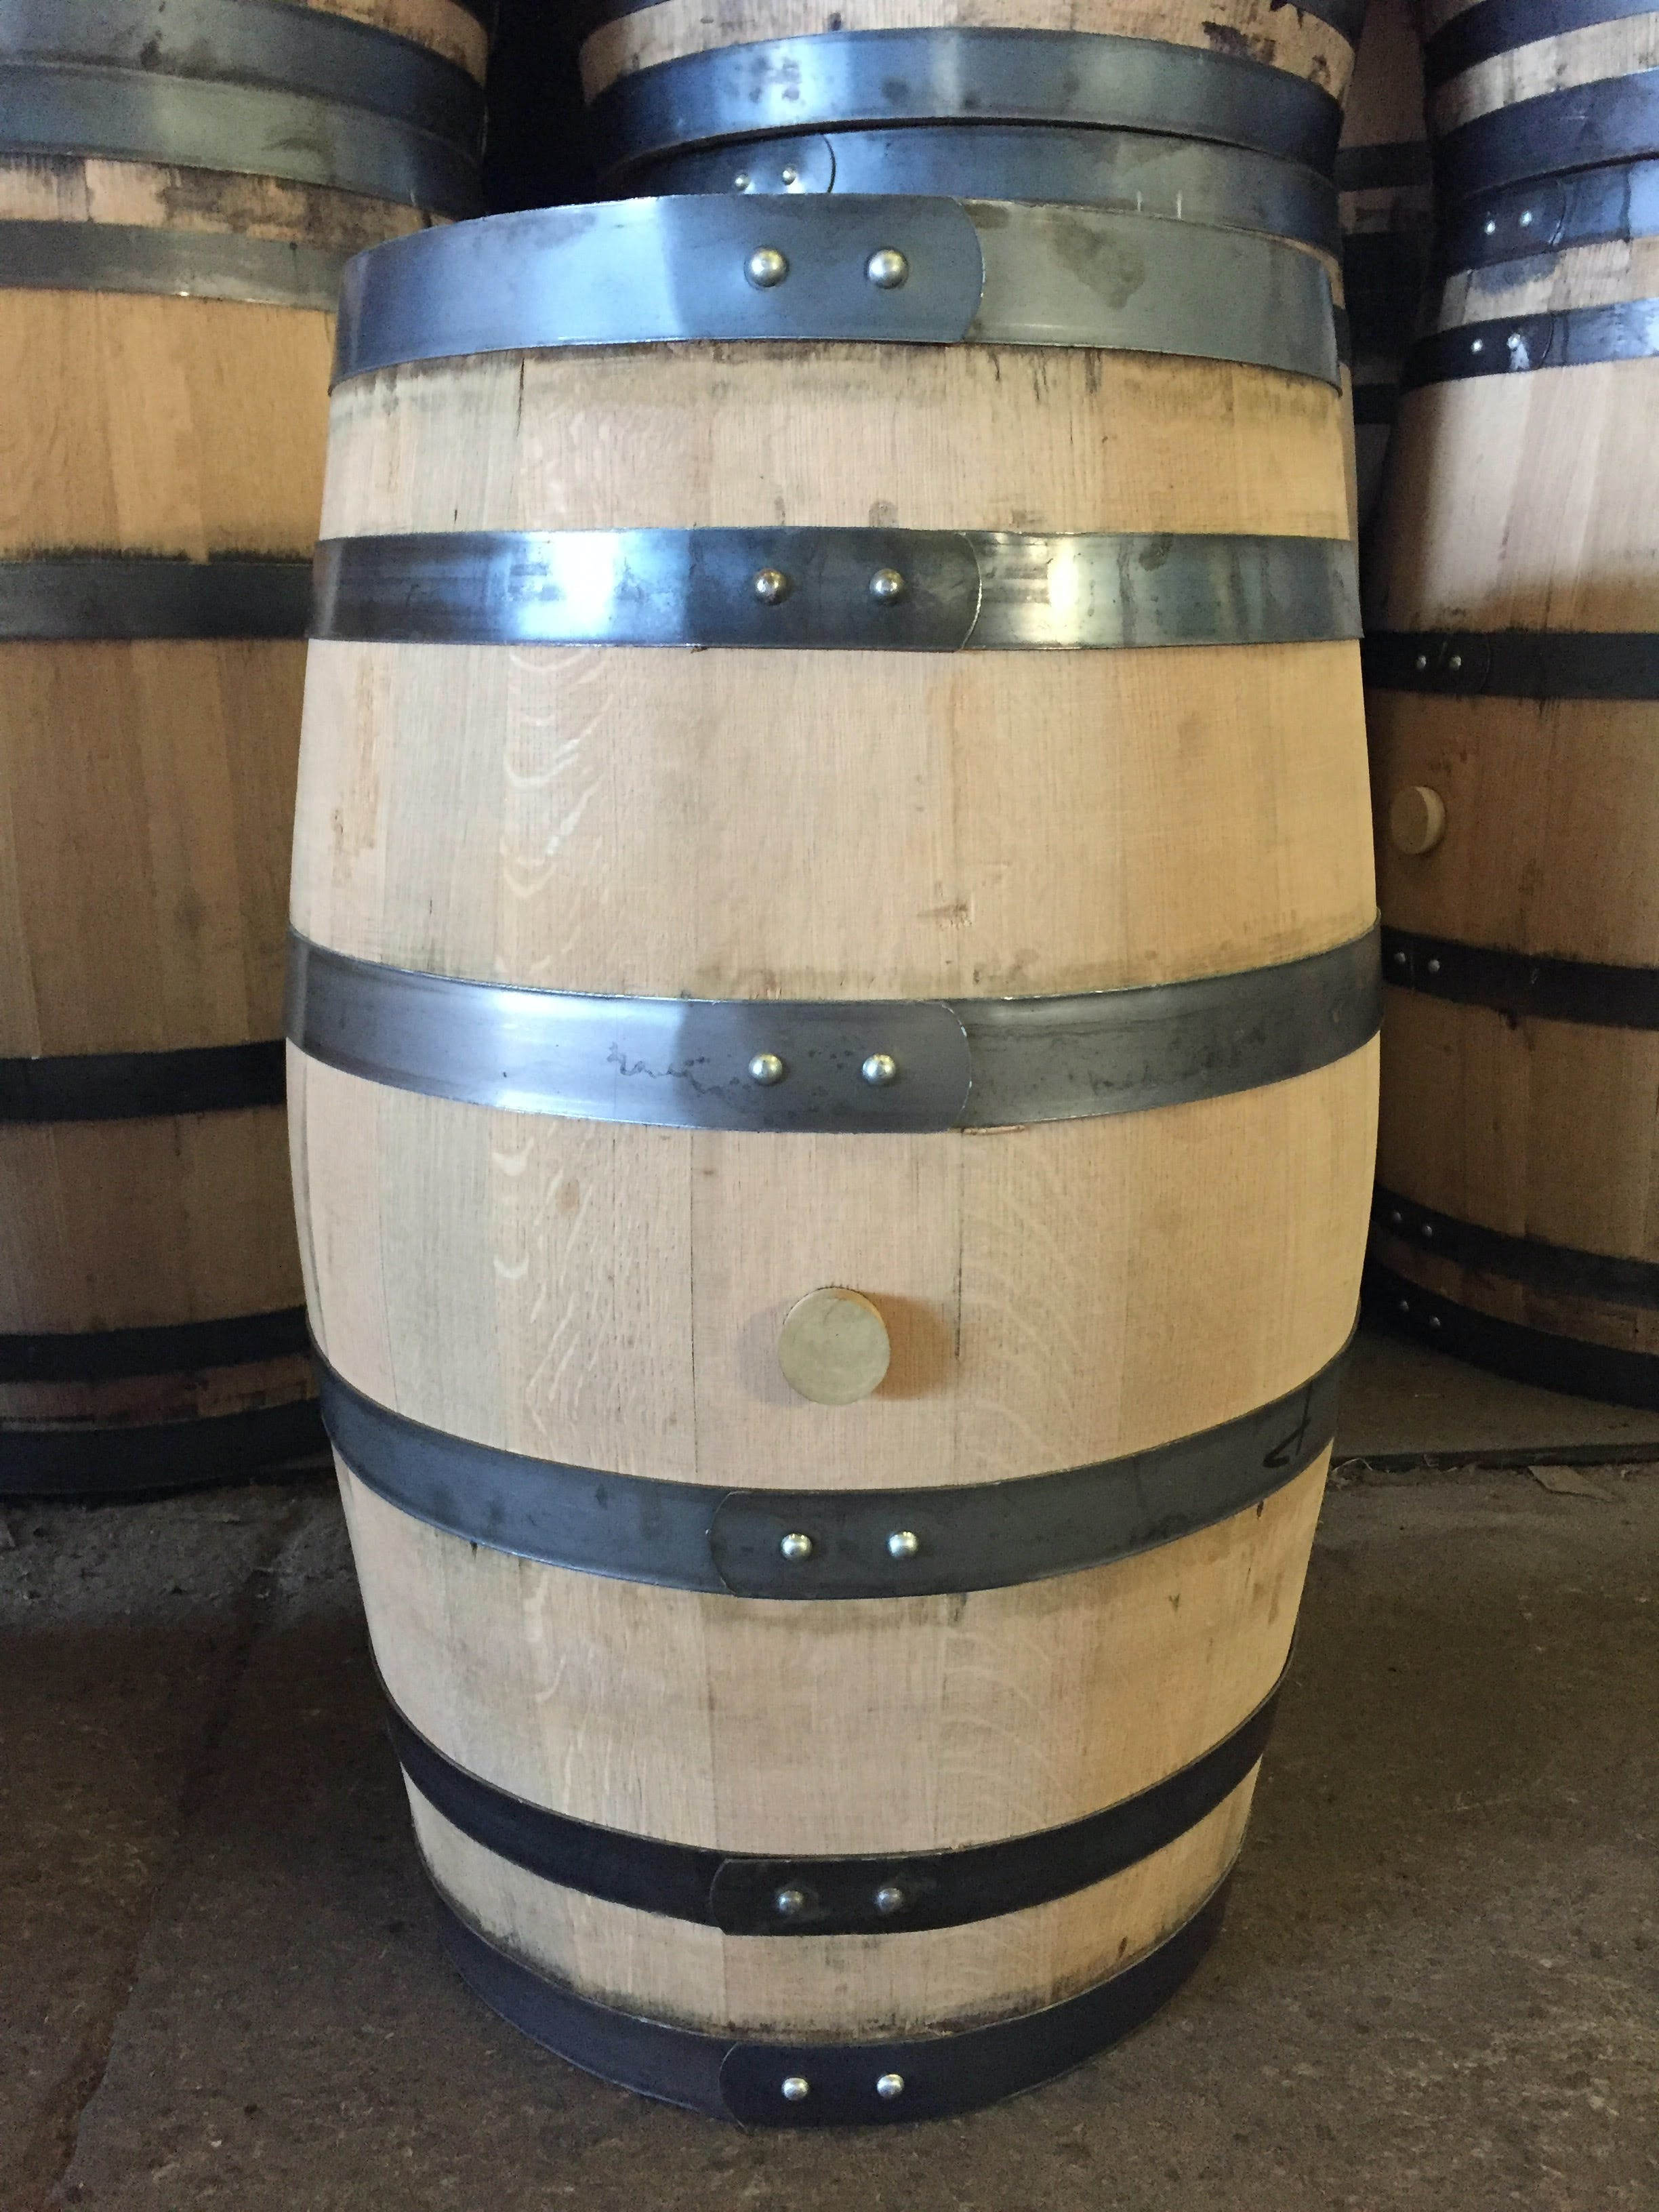 25 Gallon Barrels Barrel sold by Kelvin Cooperage